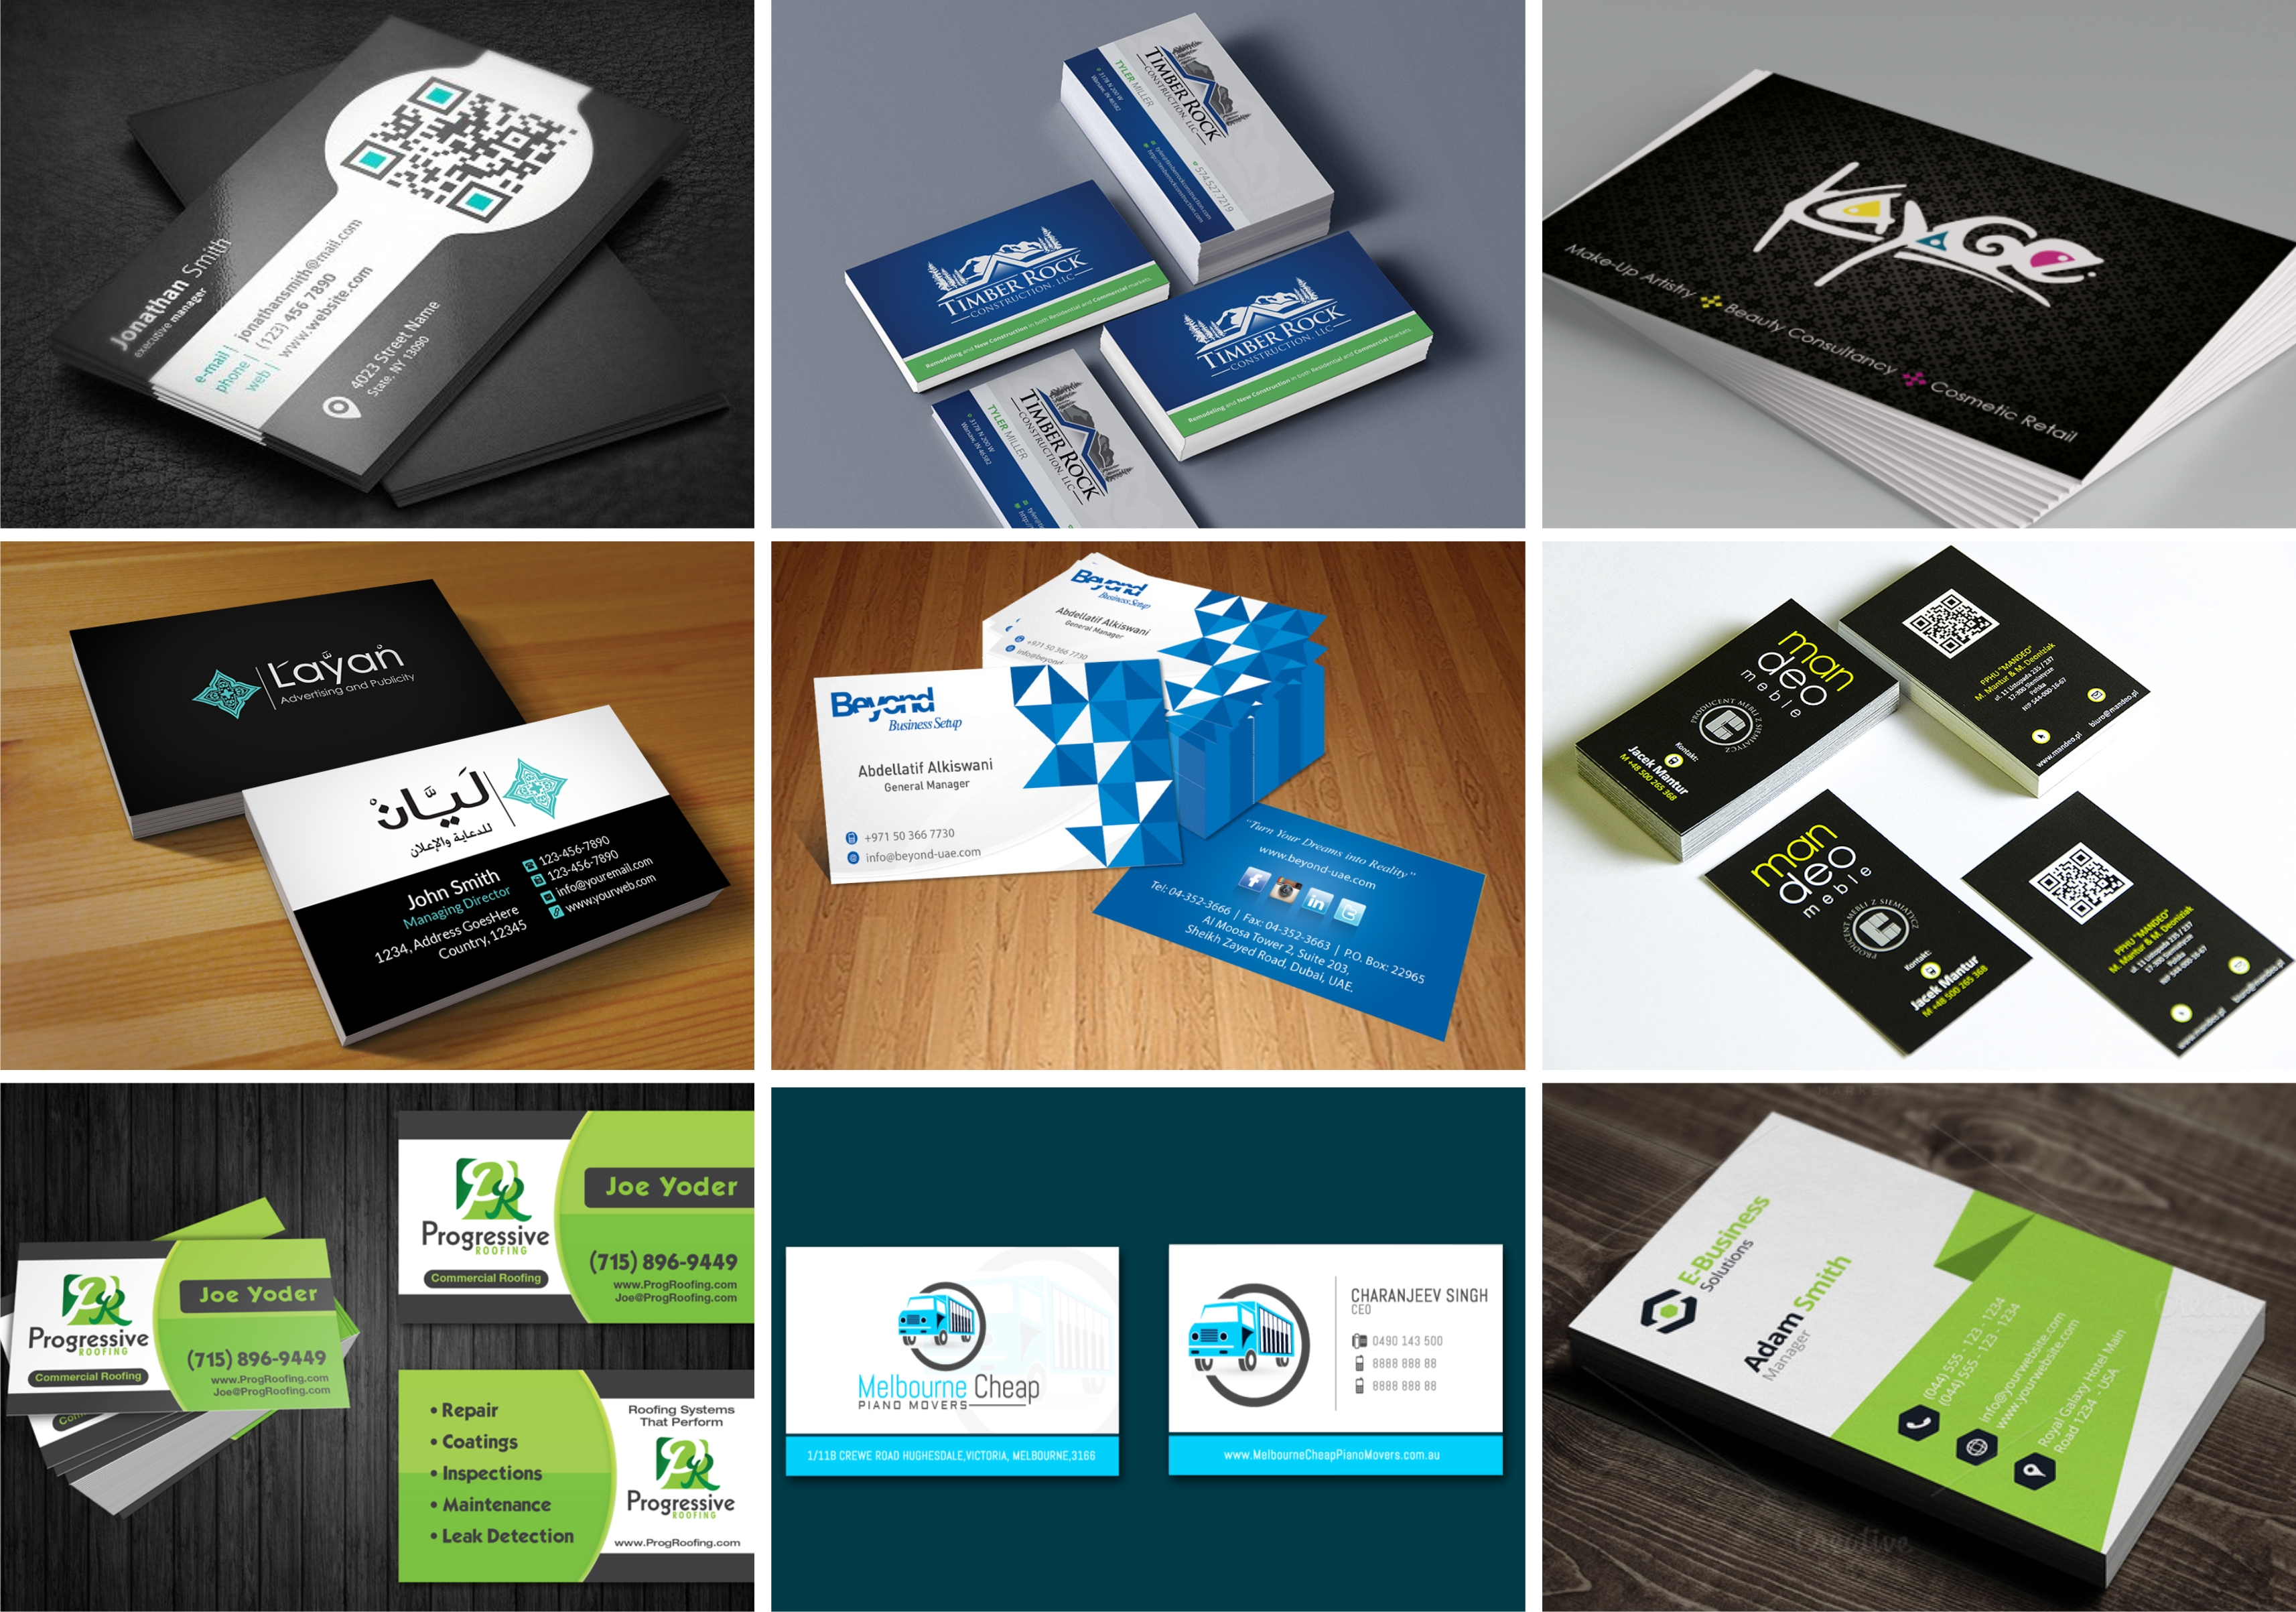 Download] My Professional Business Cards V4.0 RETAIL [2016 version ...